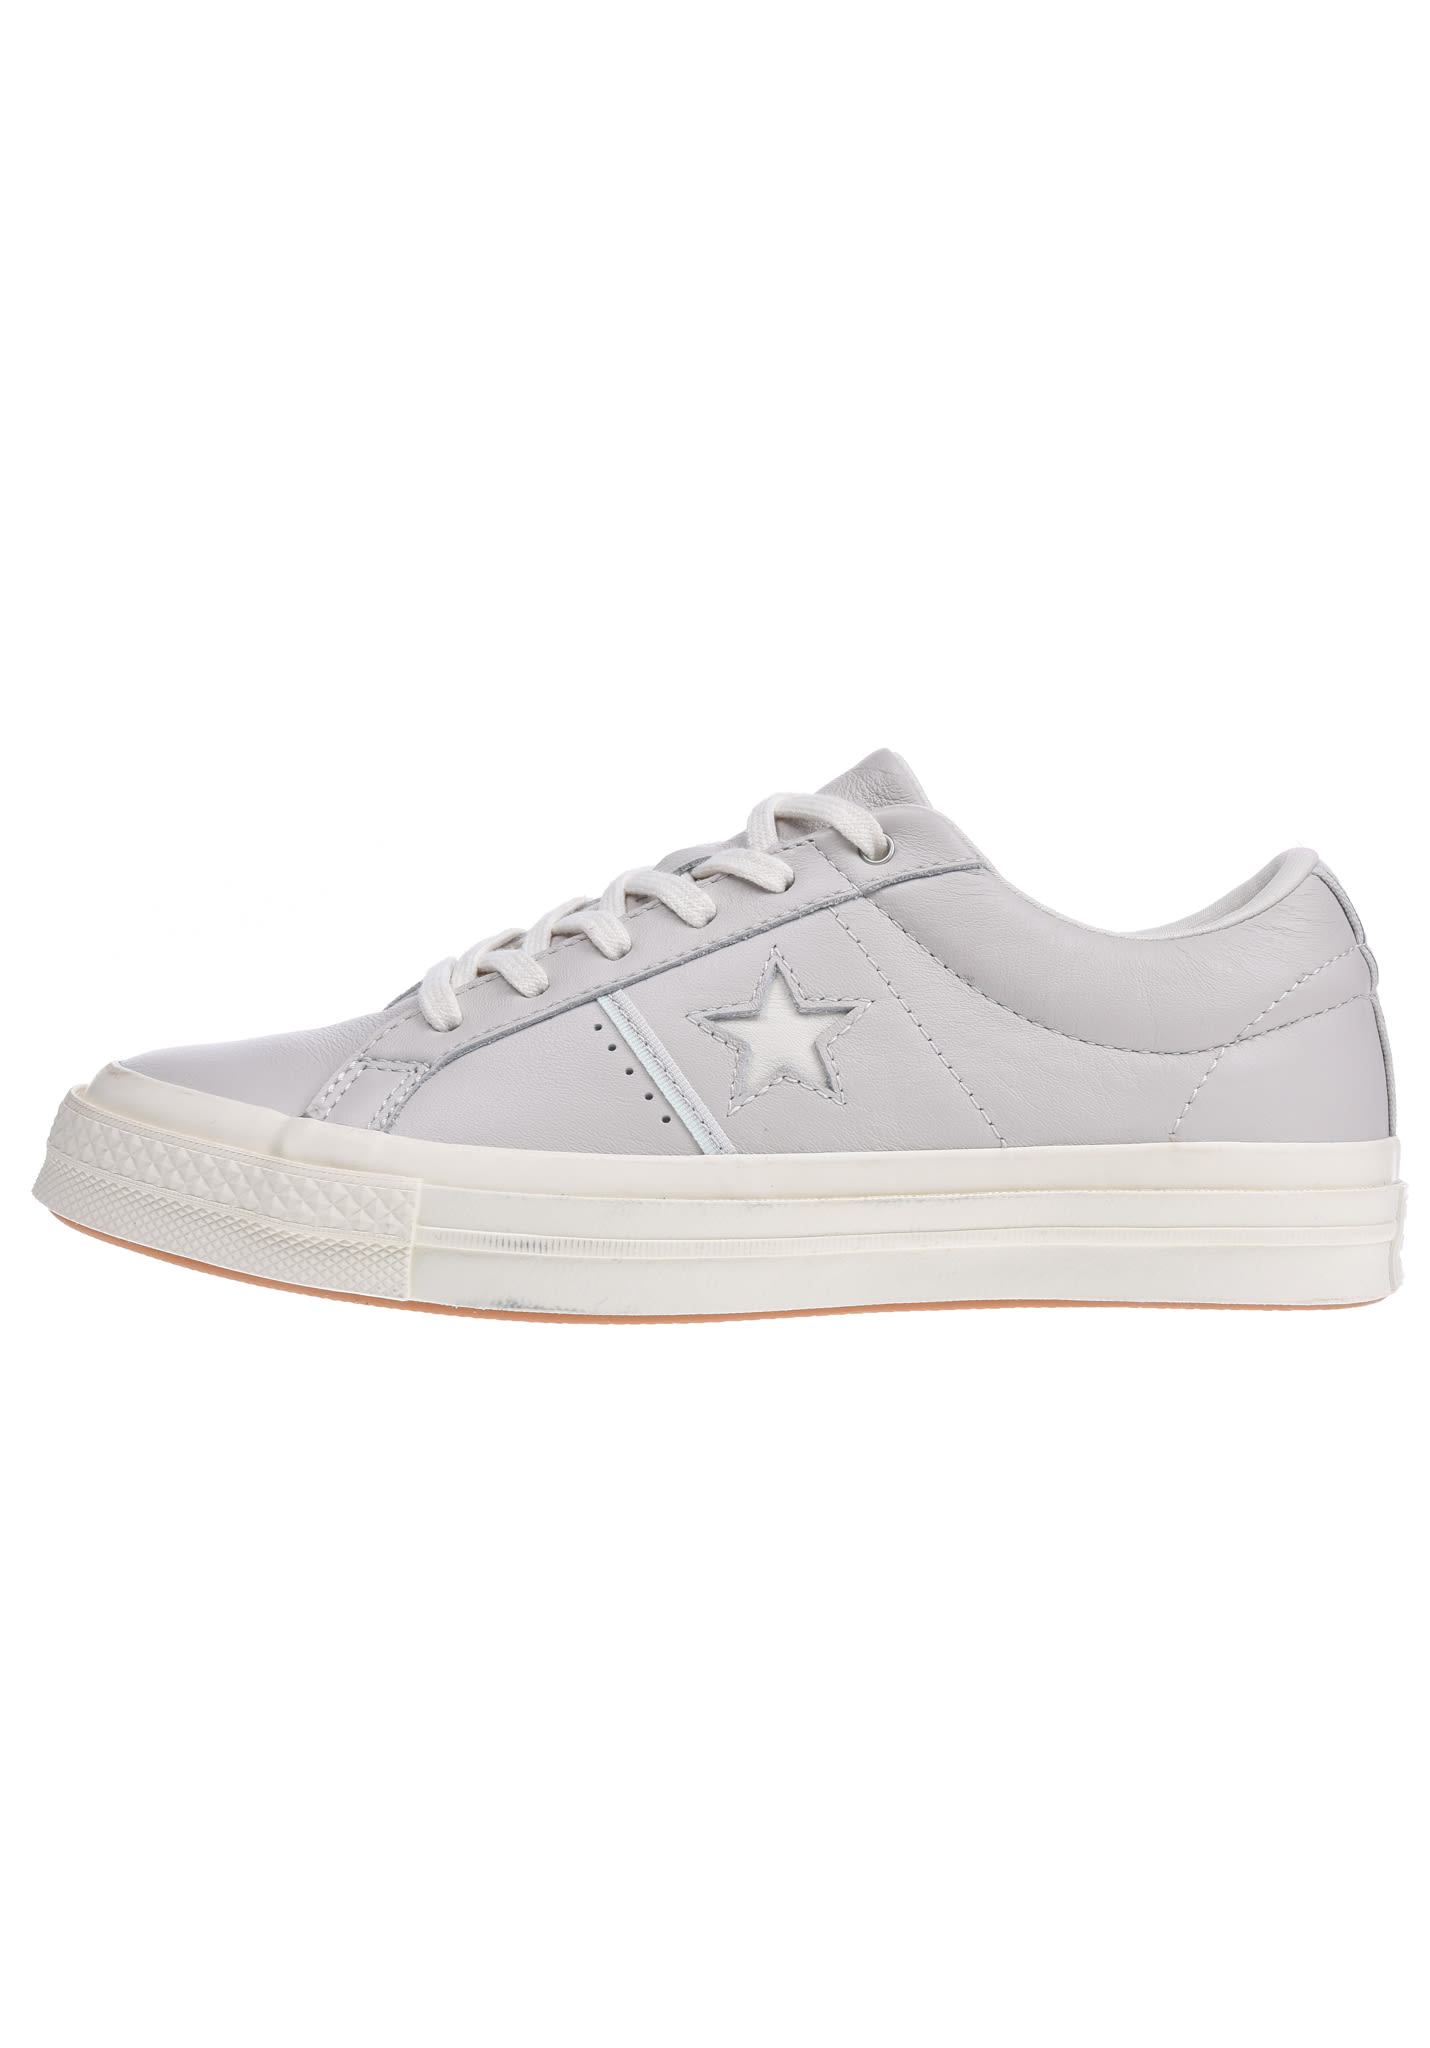 Converse One Star OX - Sneaker - Grau